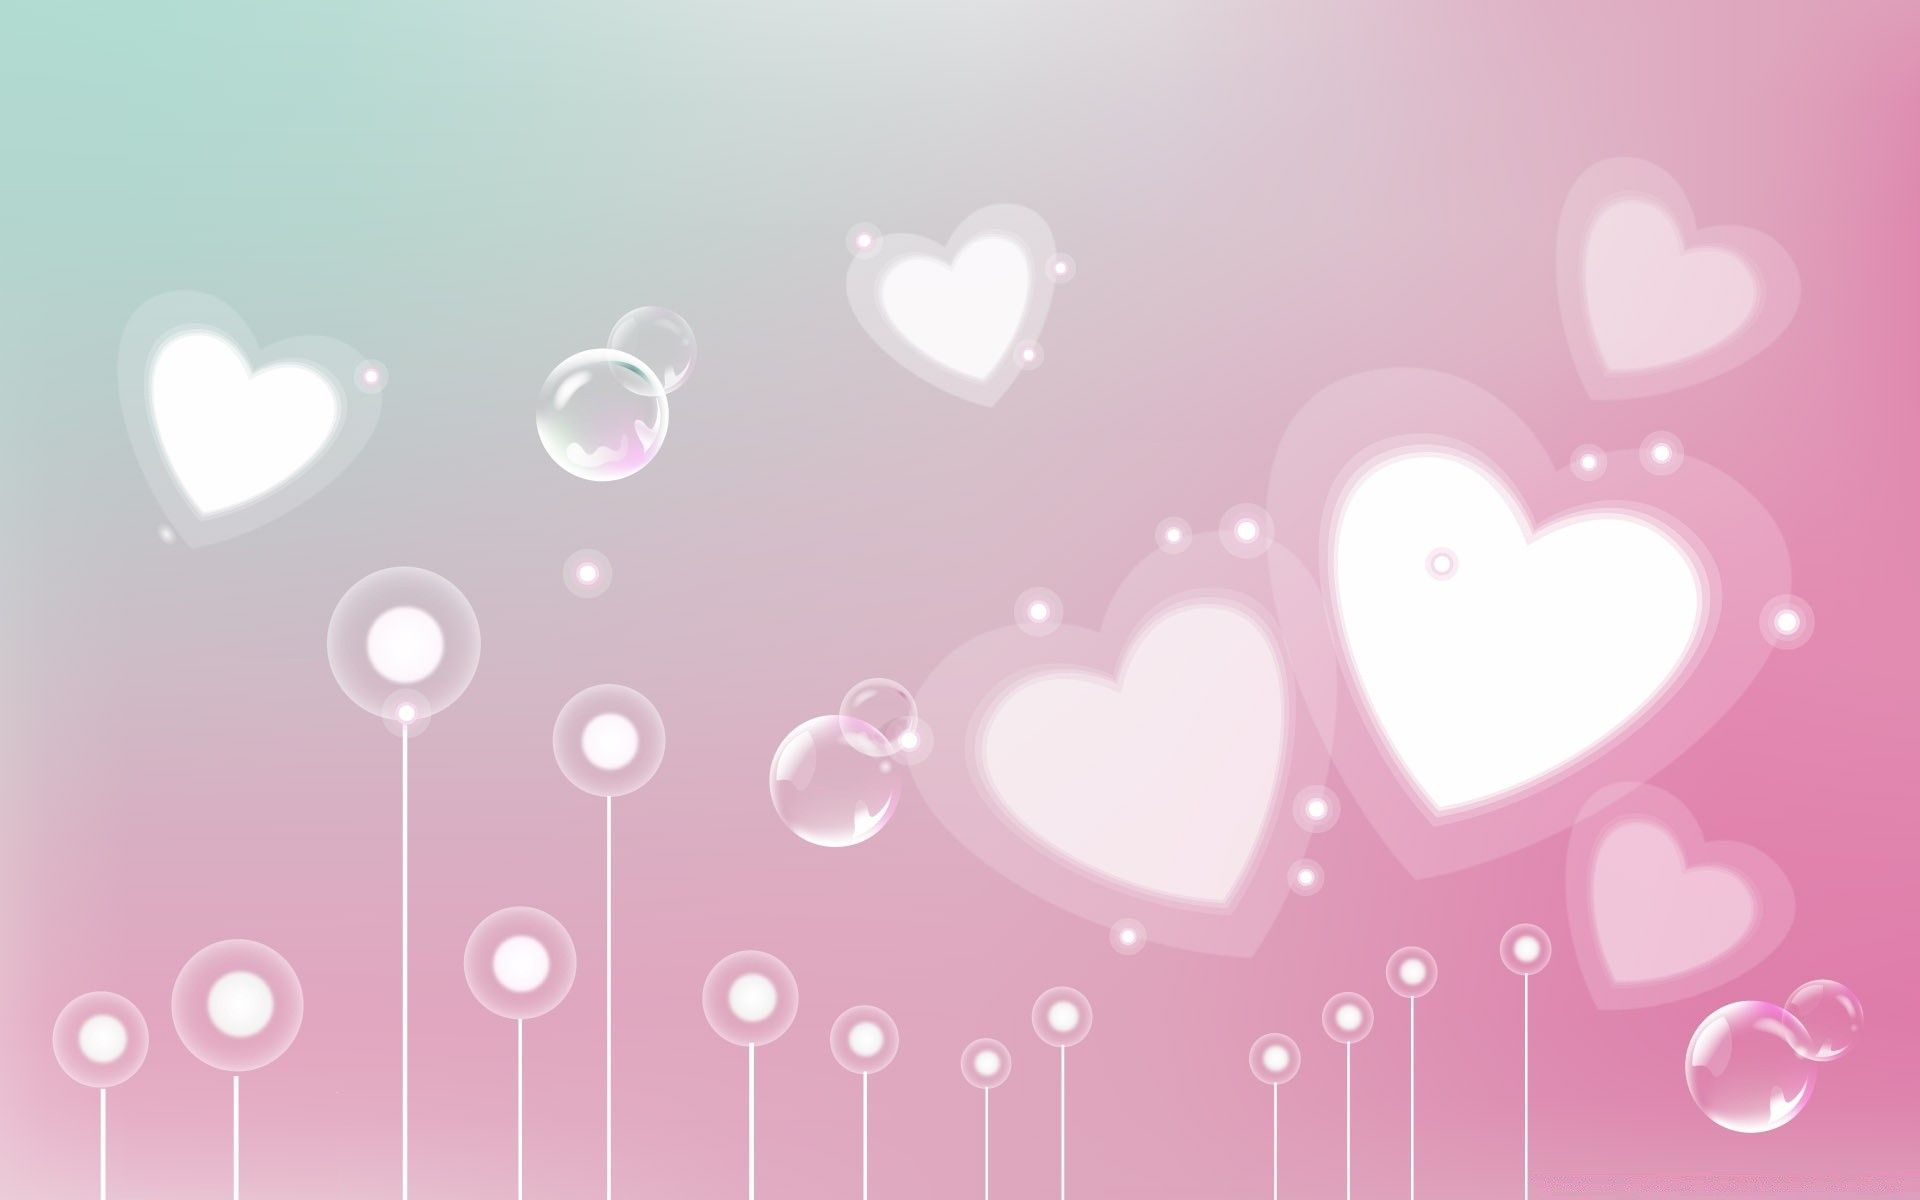 1920x1200 Pastel Valentine Hearts - Android wallpapers